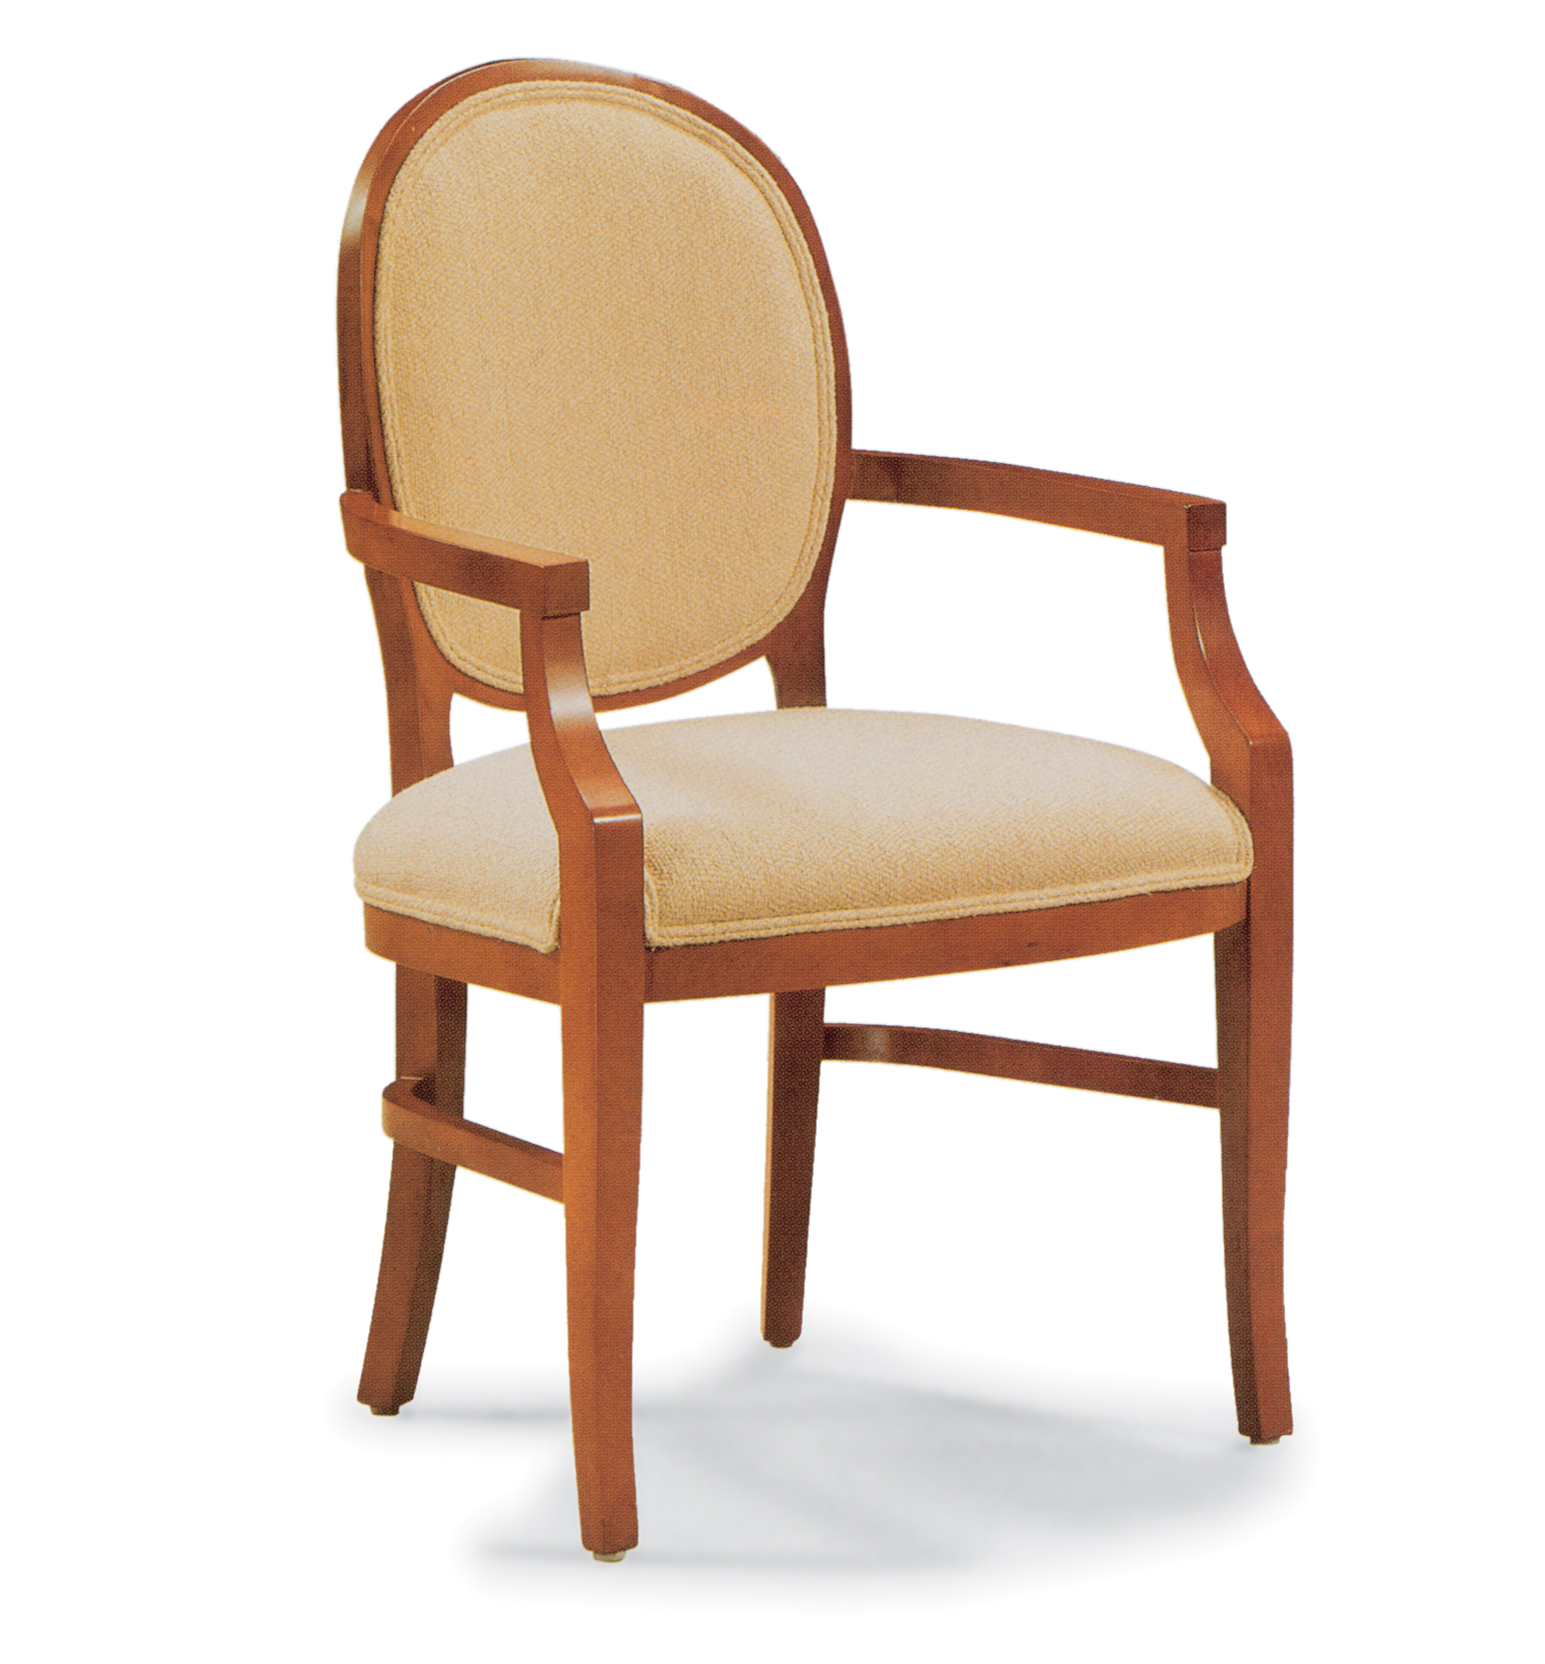 wooden chairs with arms india dining johannesburg g3317 wood arm chair